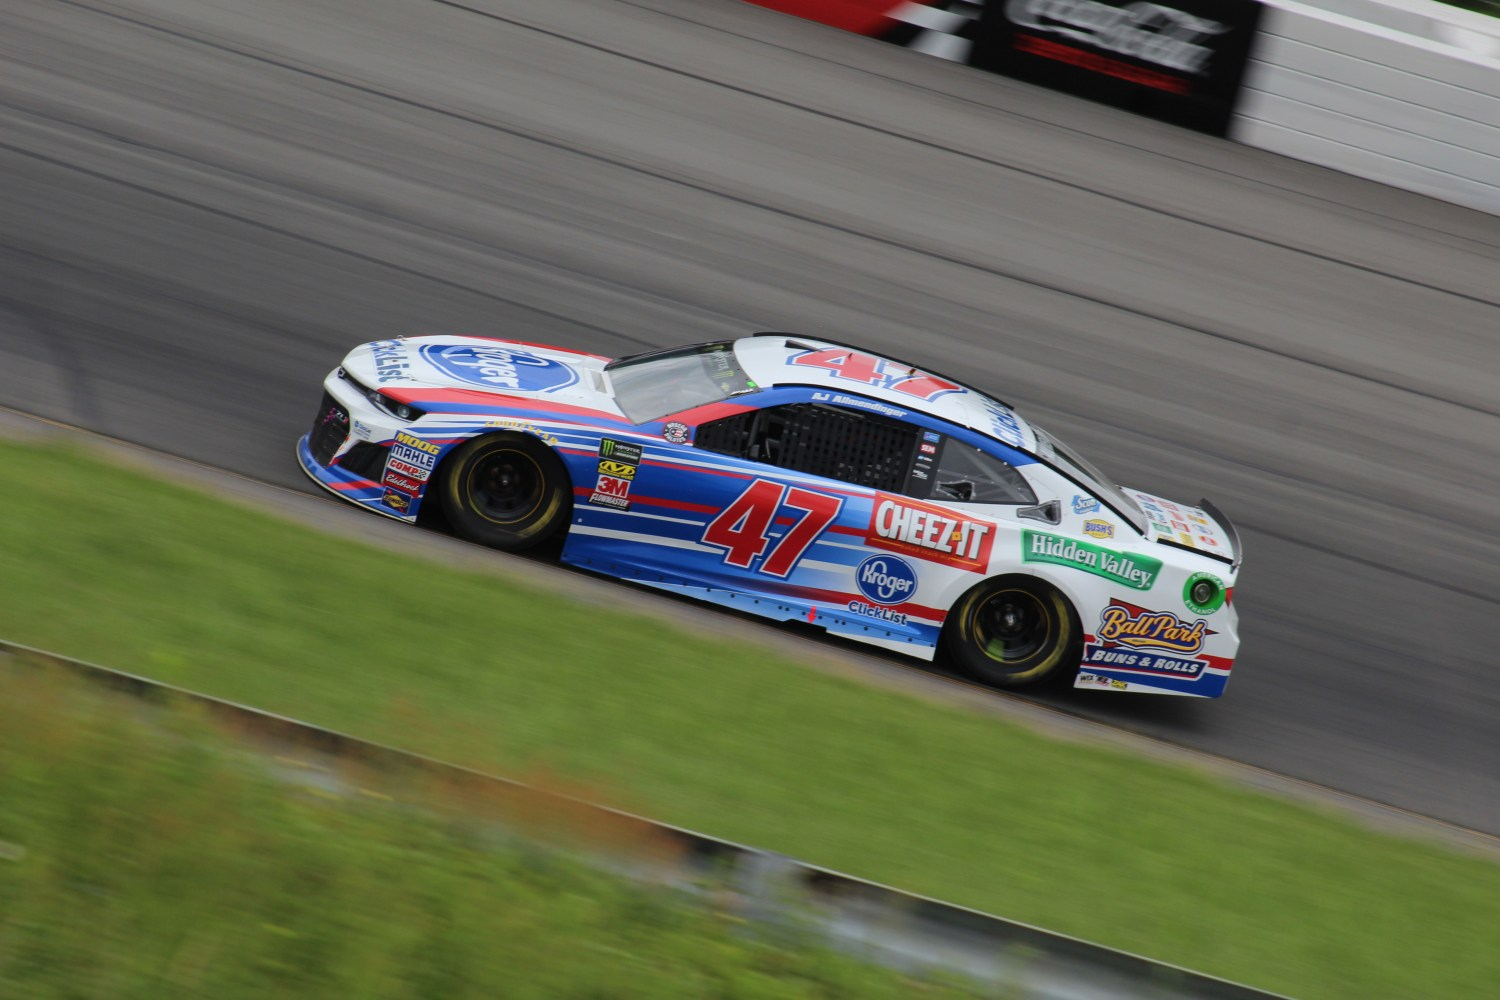 AJ Allmendinger races during the 2018 Pocono 400. (Tyler Head | The Racing Experts)